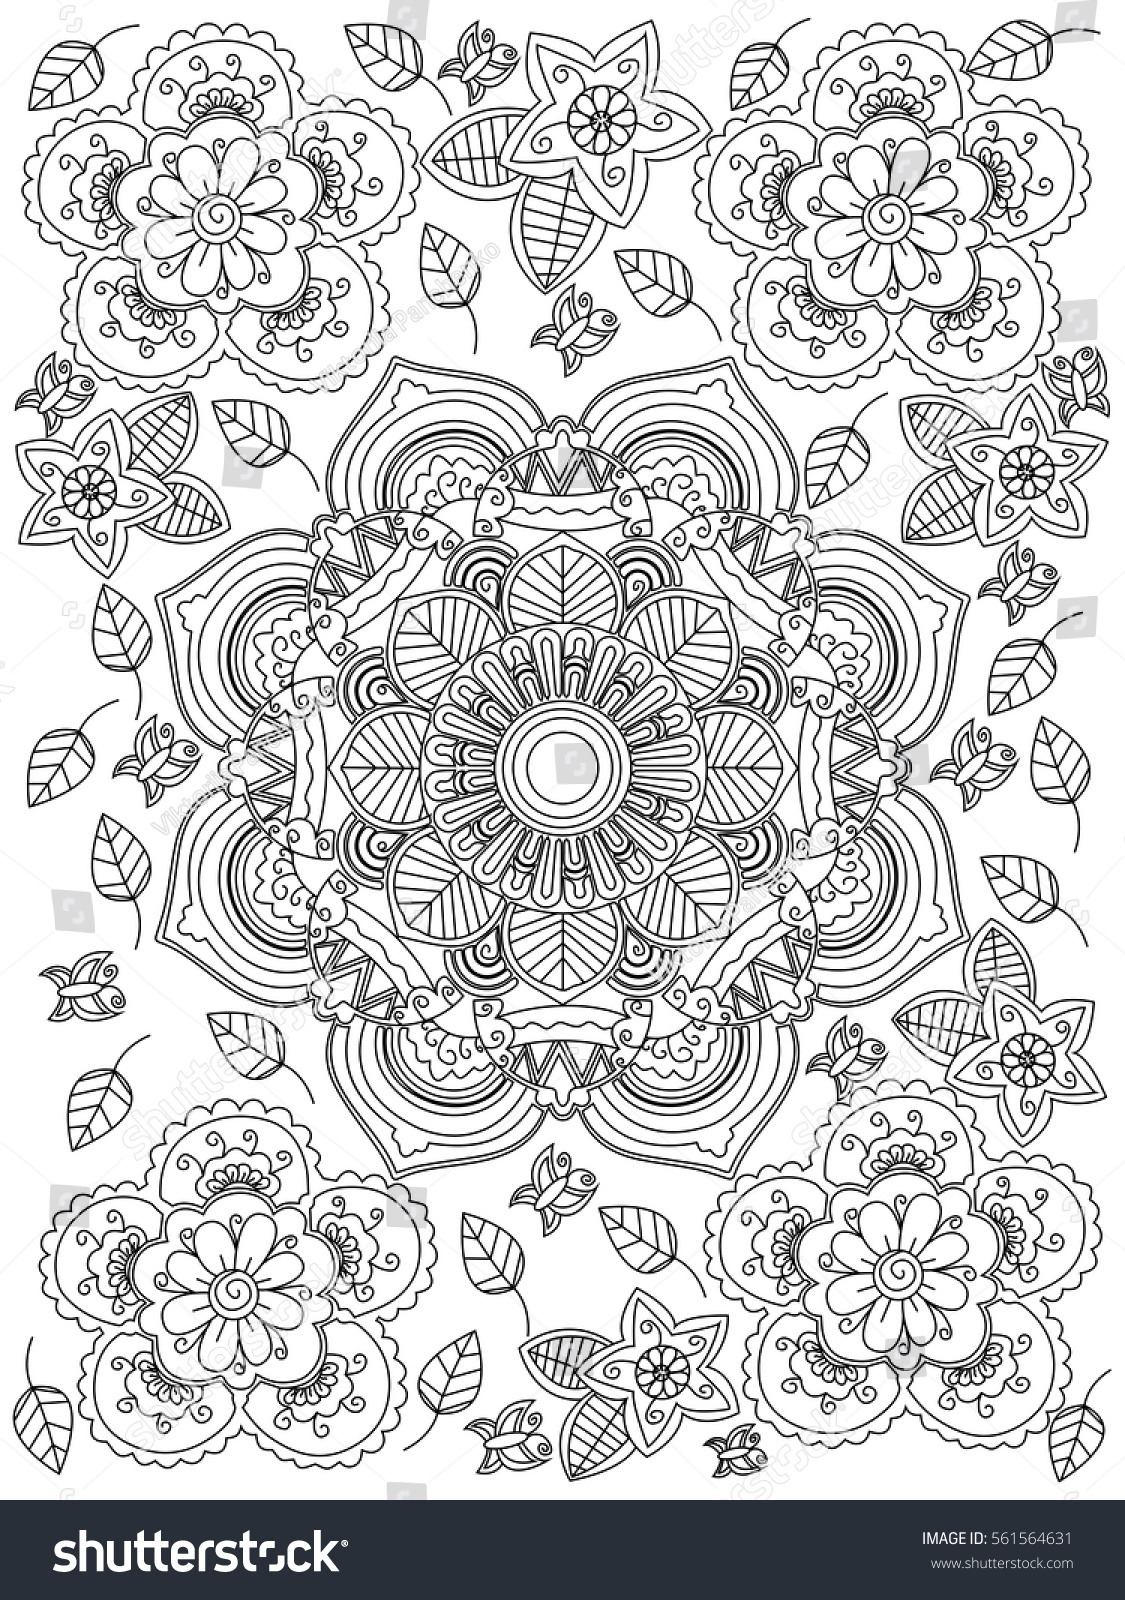 Mandala Flower Coloring Book Adults Vector Stock Vector (royalty